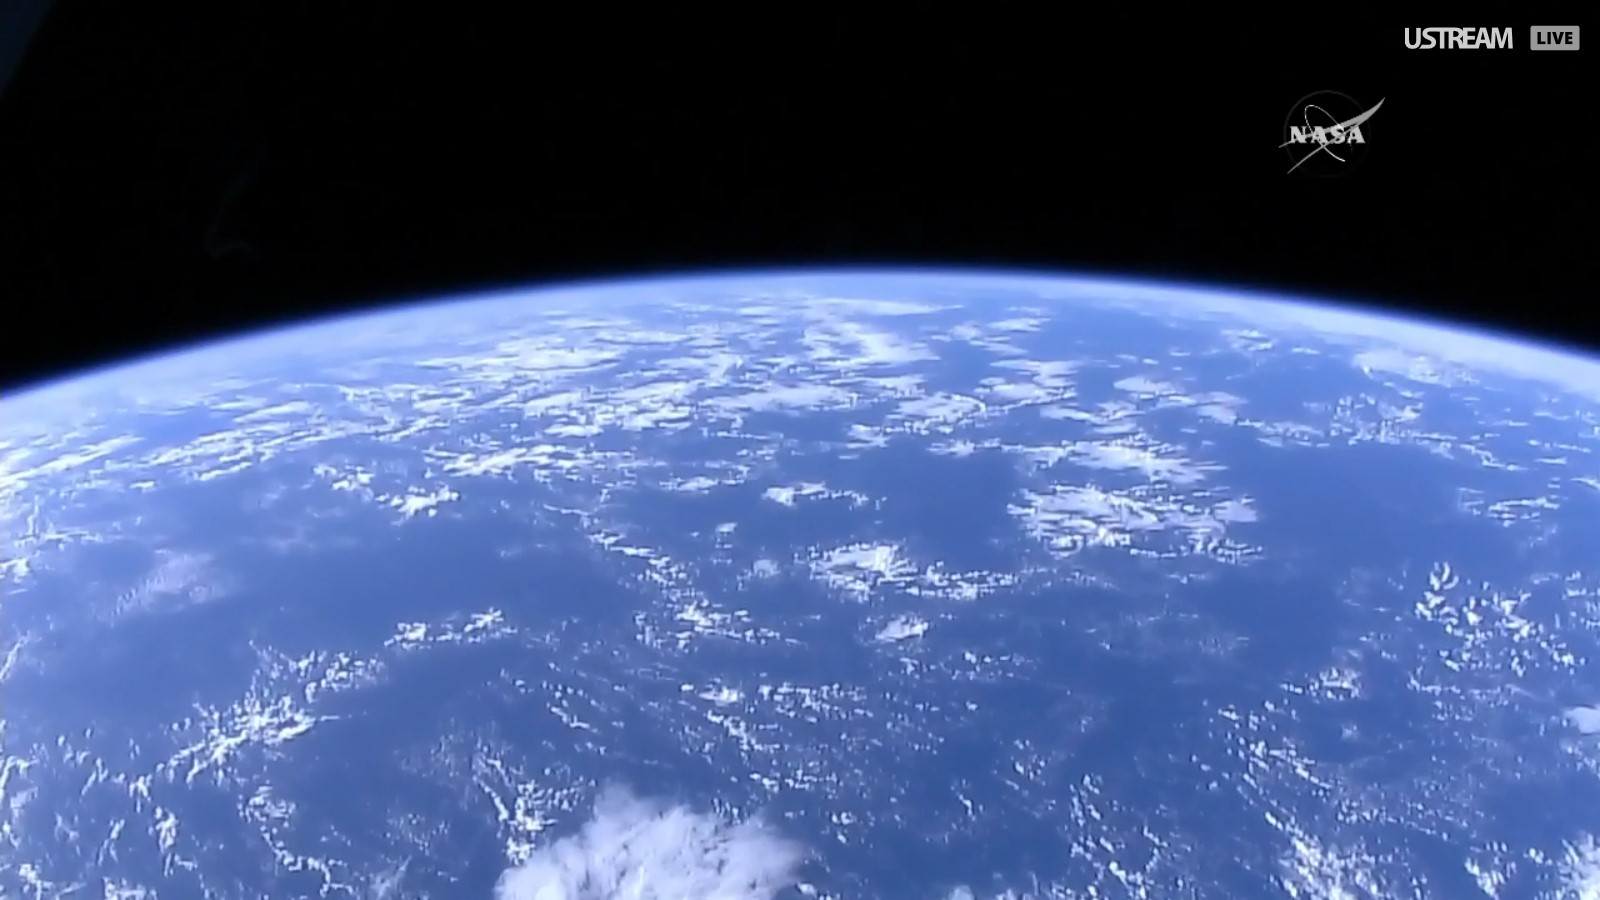 ustream iss space station - photo #22